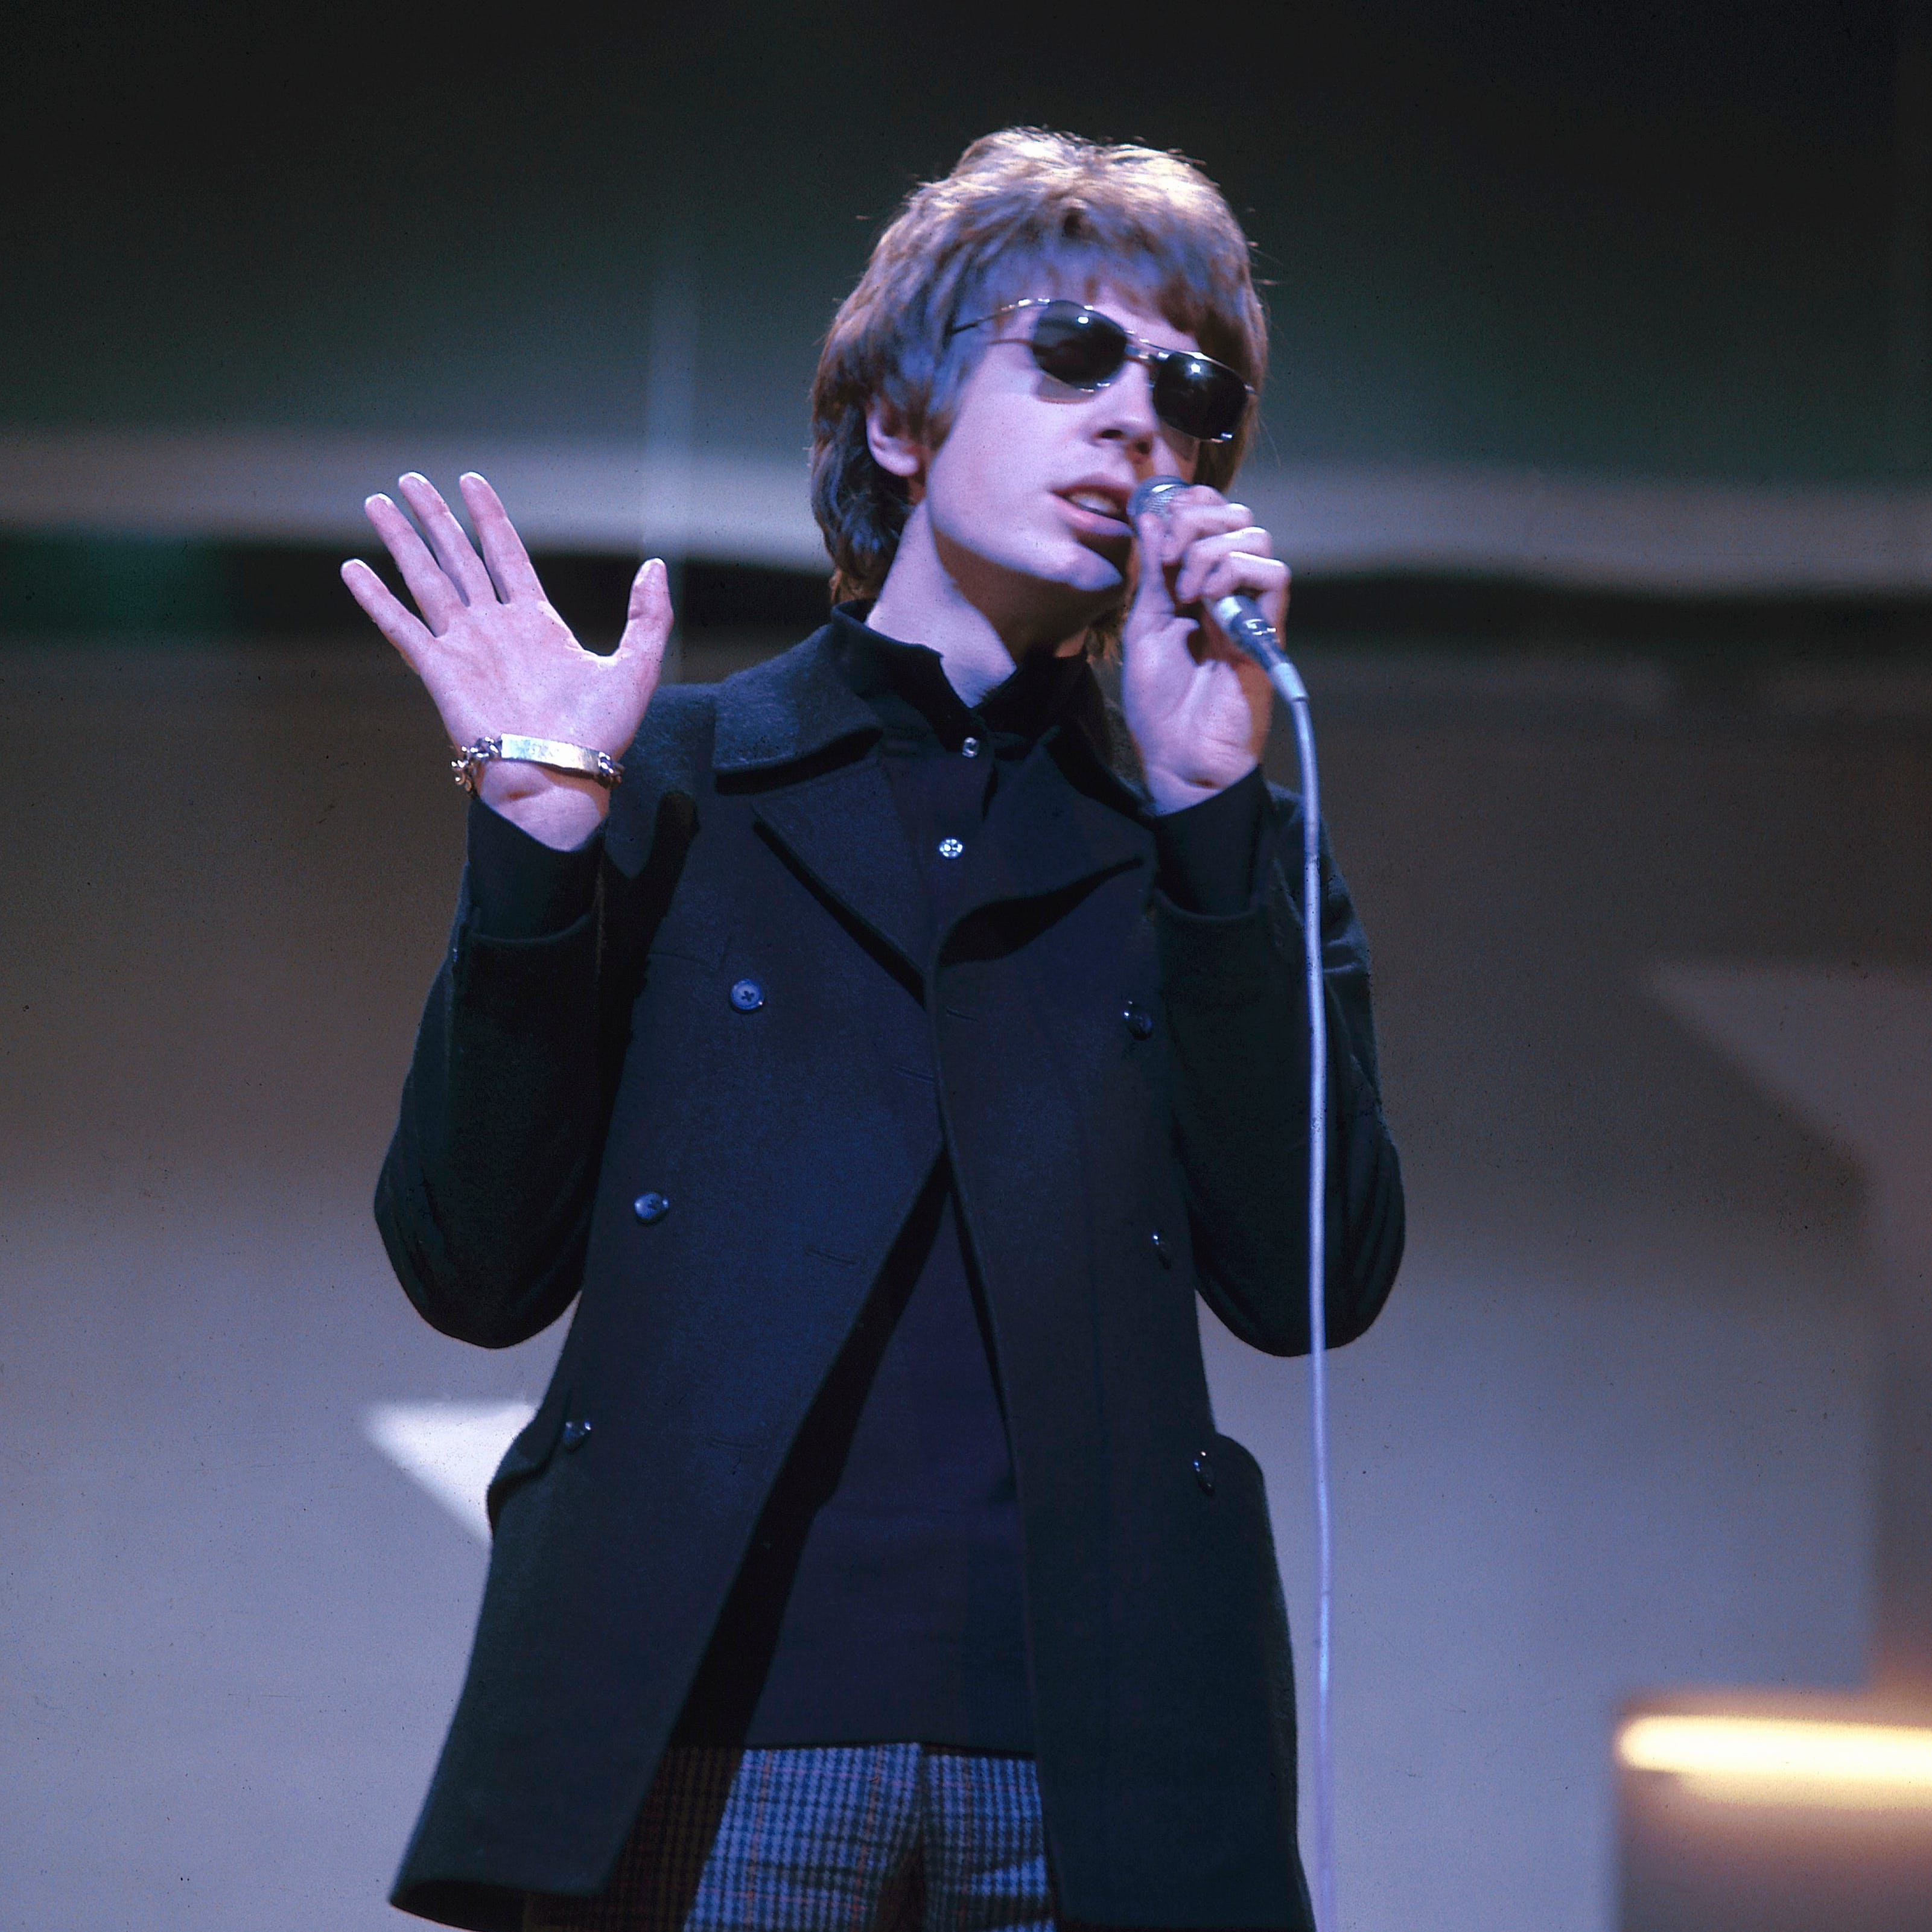 Singer Scott Walker, enigmatic frontman of the Walker Brothers, dies at 76